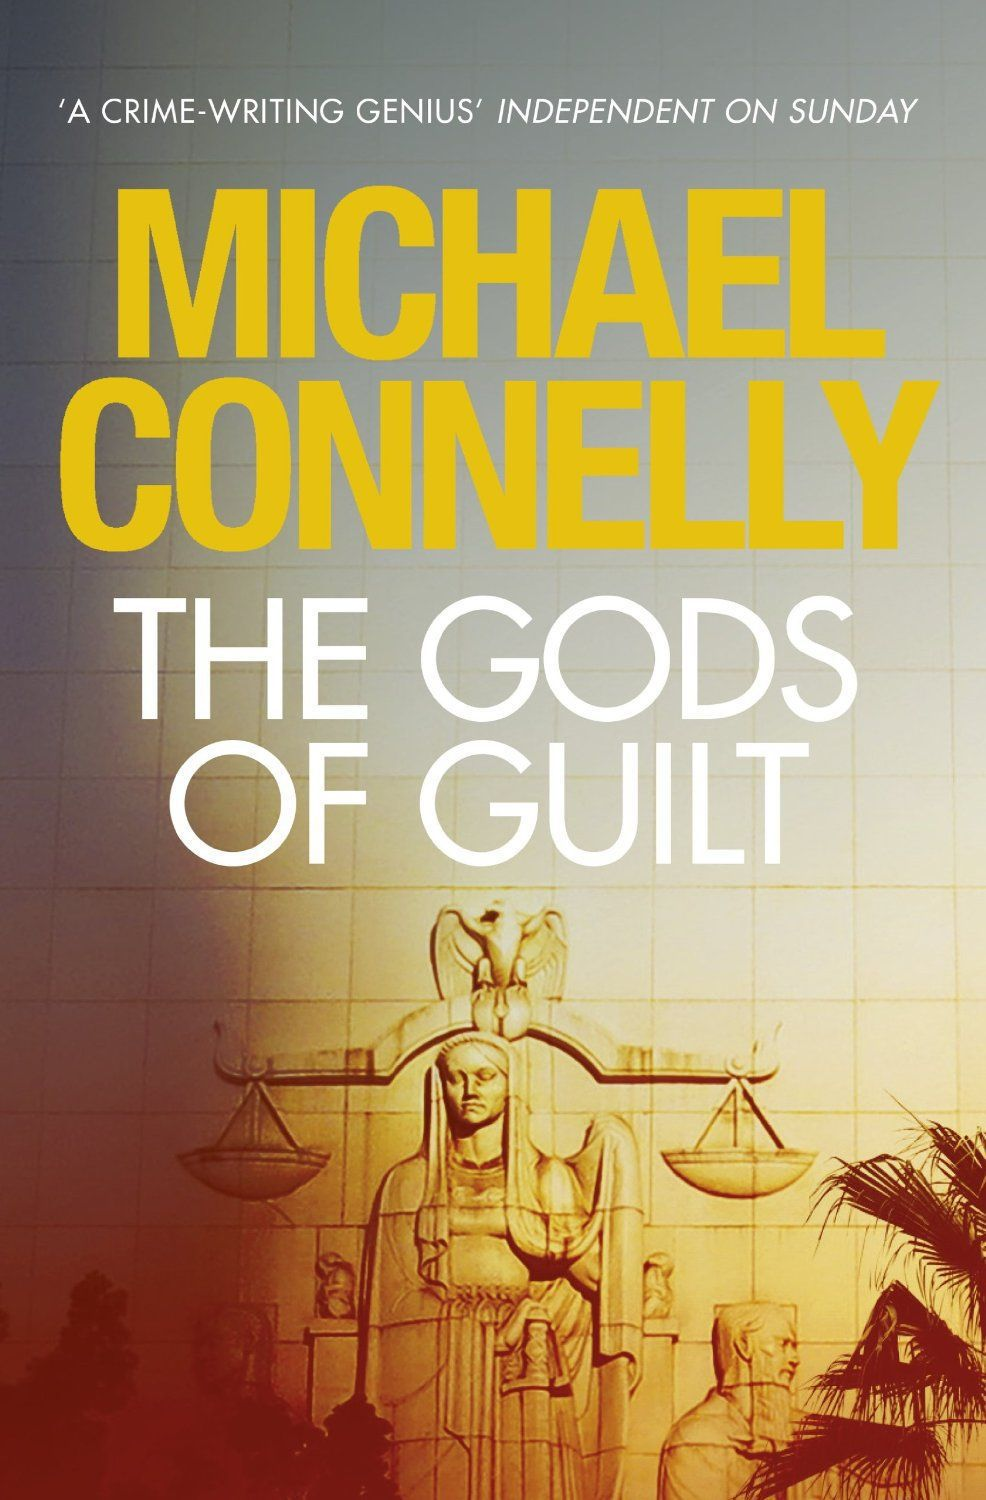 Lincoln Lawyer returns in Connelly's 'Gods of Guilt'